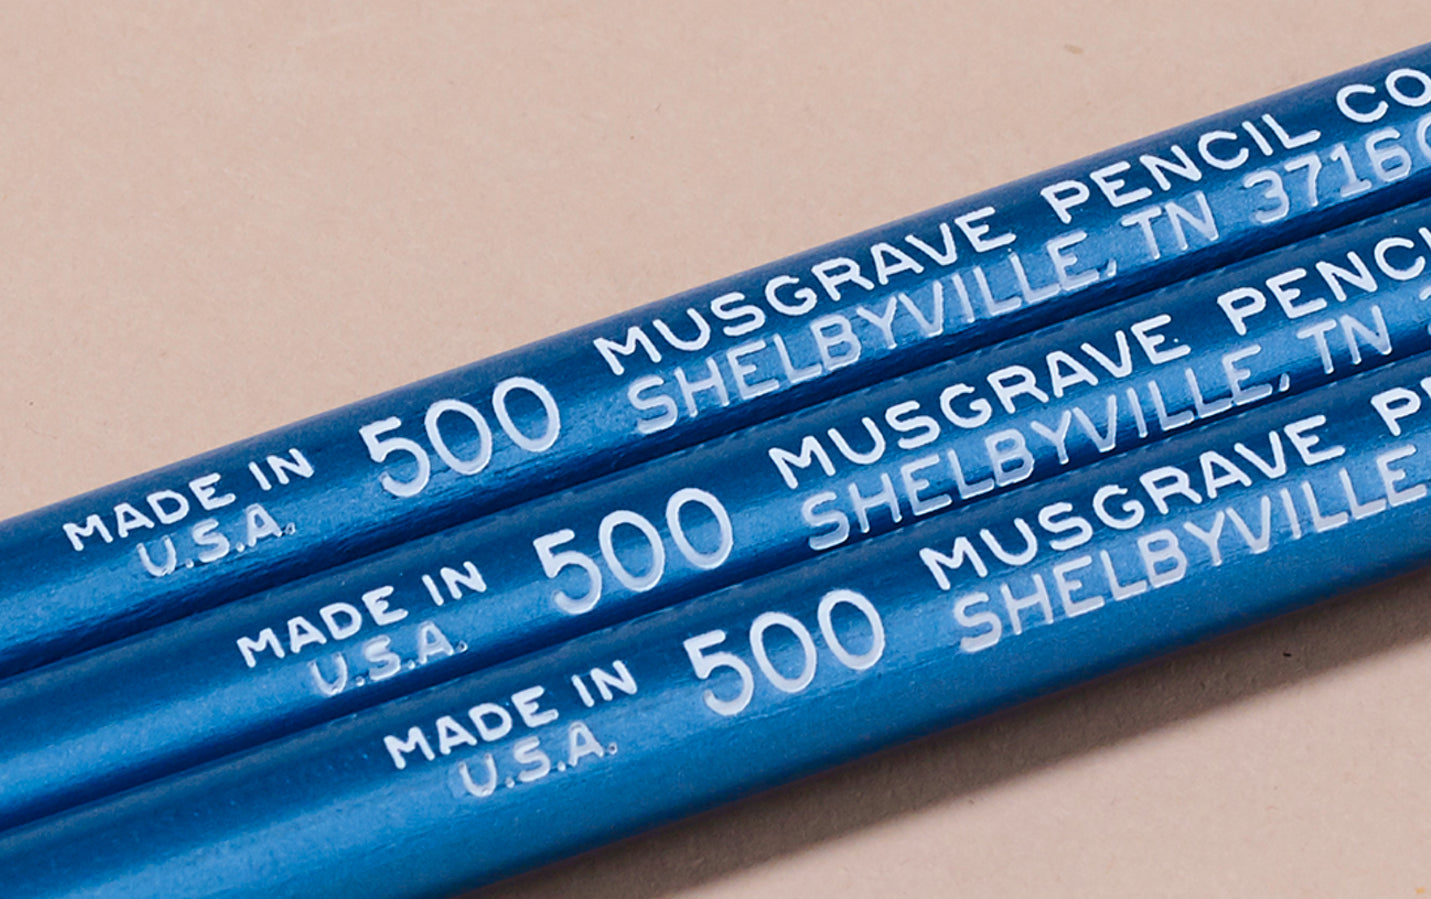 Musgrave Pencil Co TOT 500 Jumbo Pencil